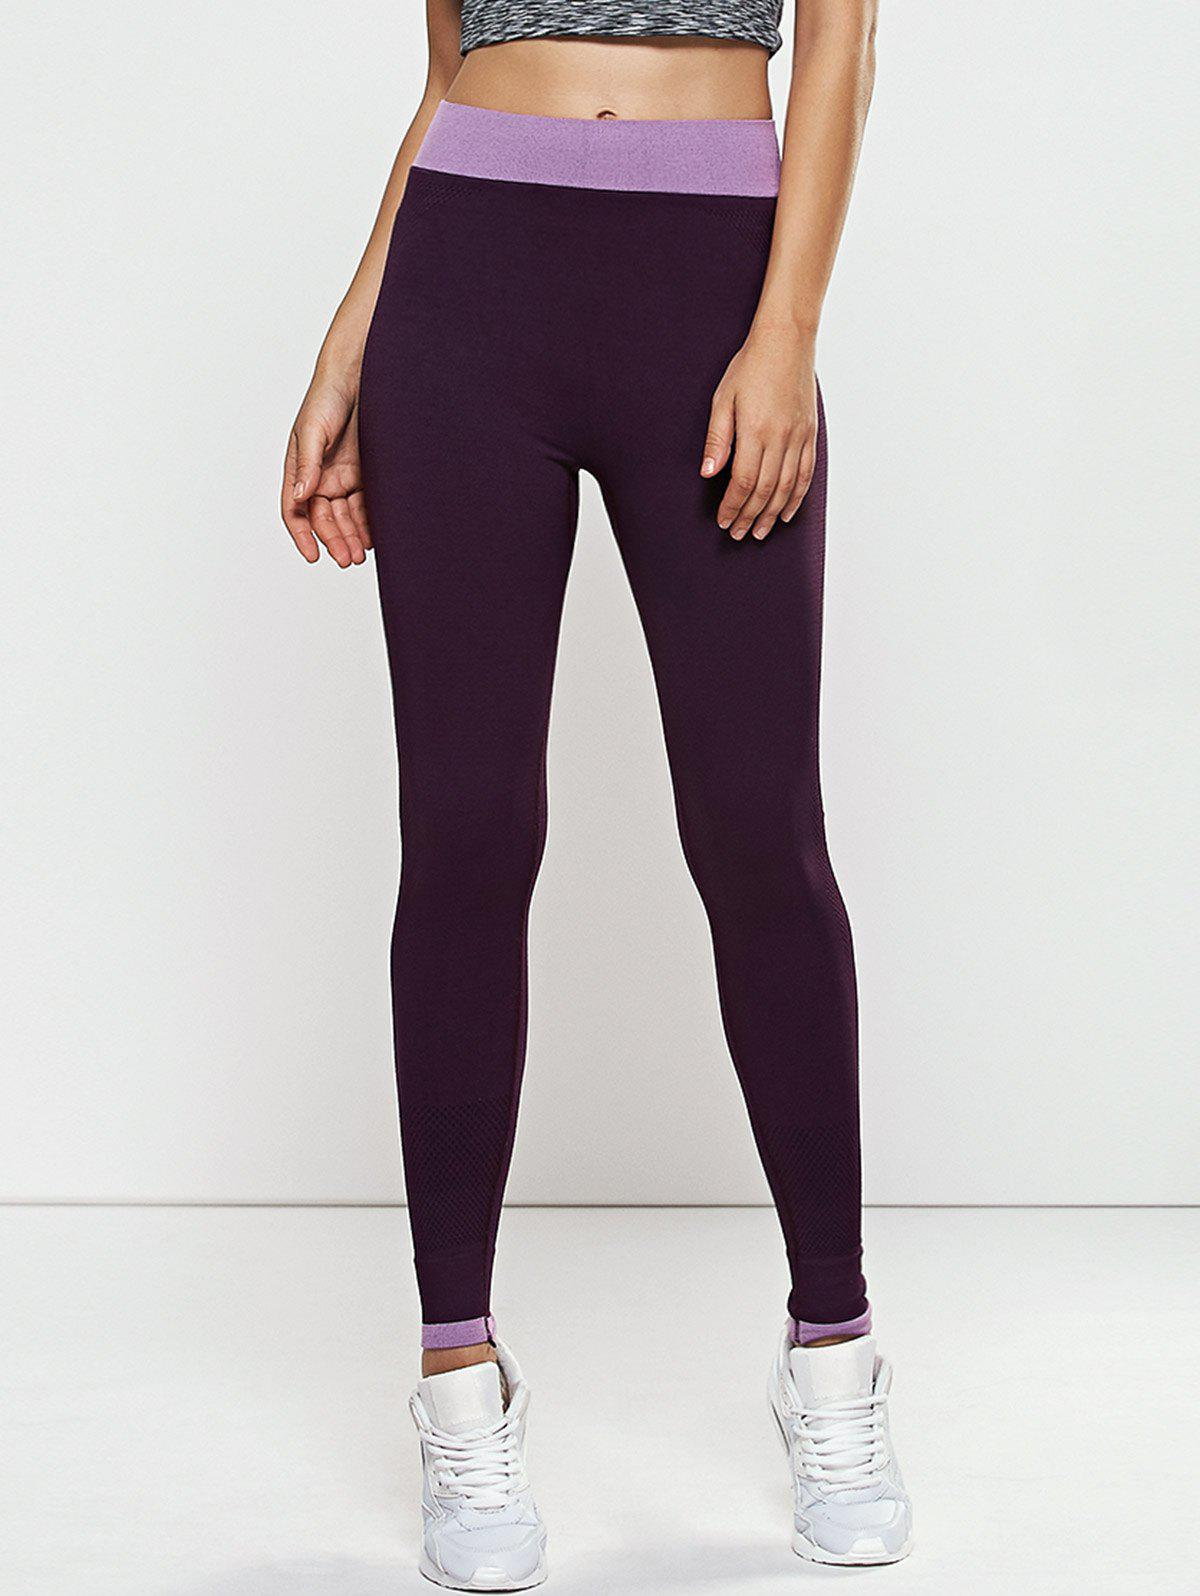 -DRY Rapide Leggings Yoga Pants